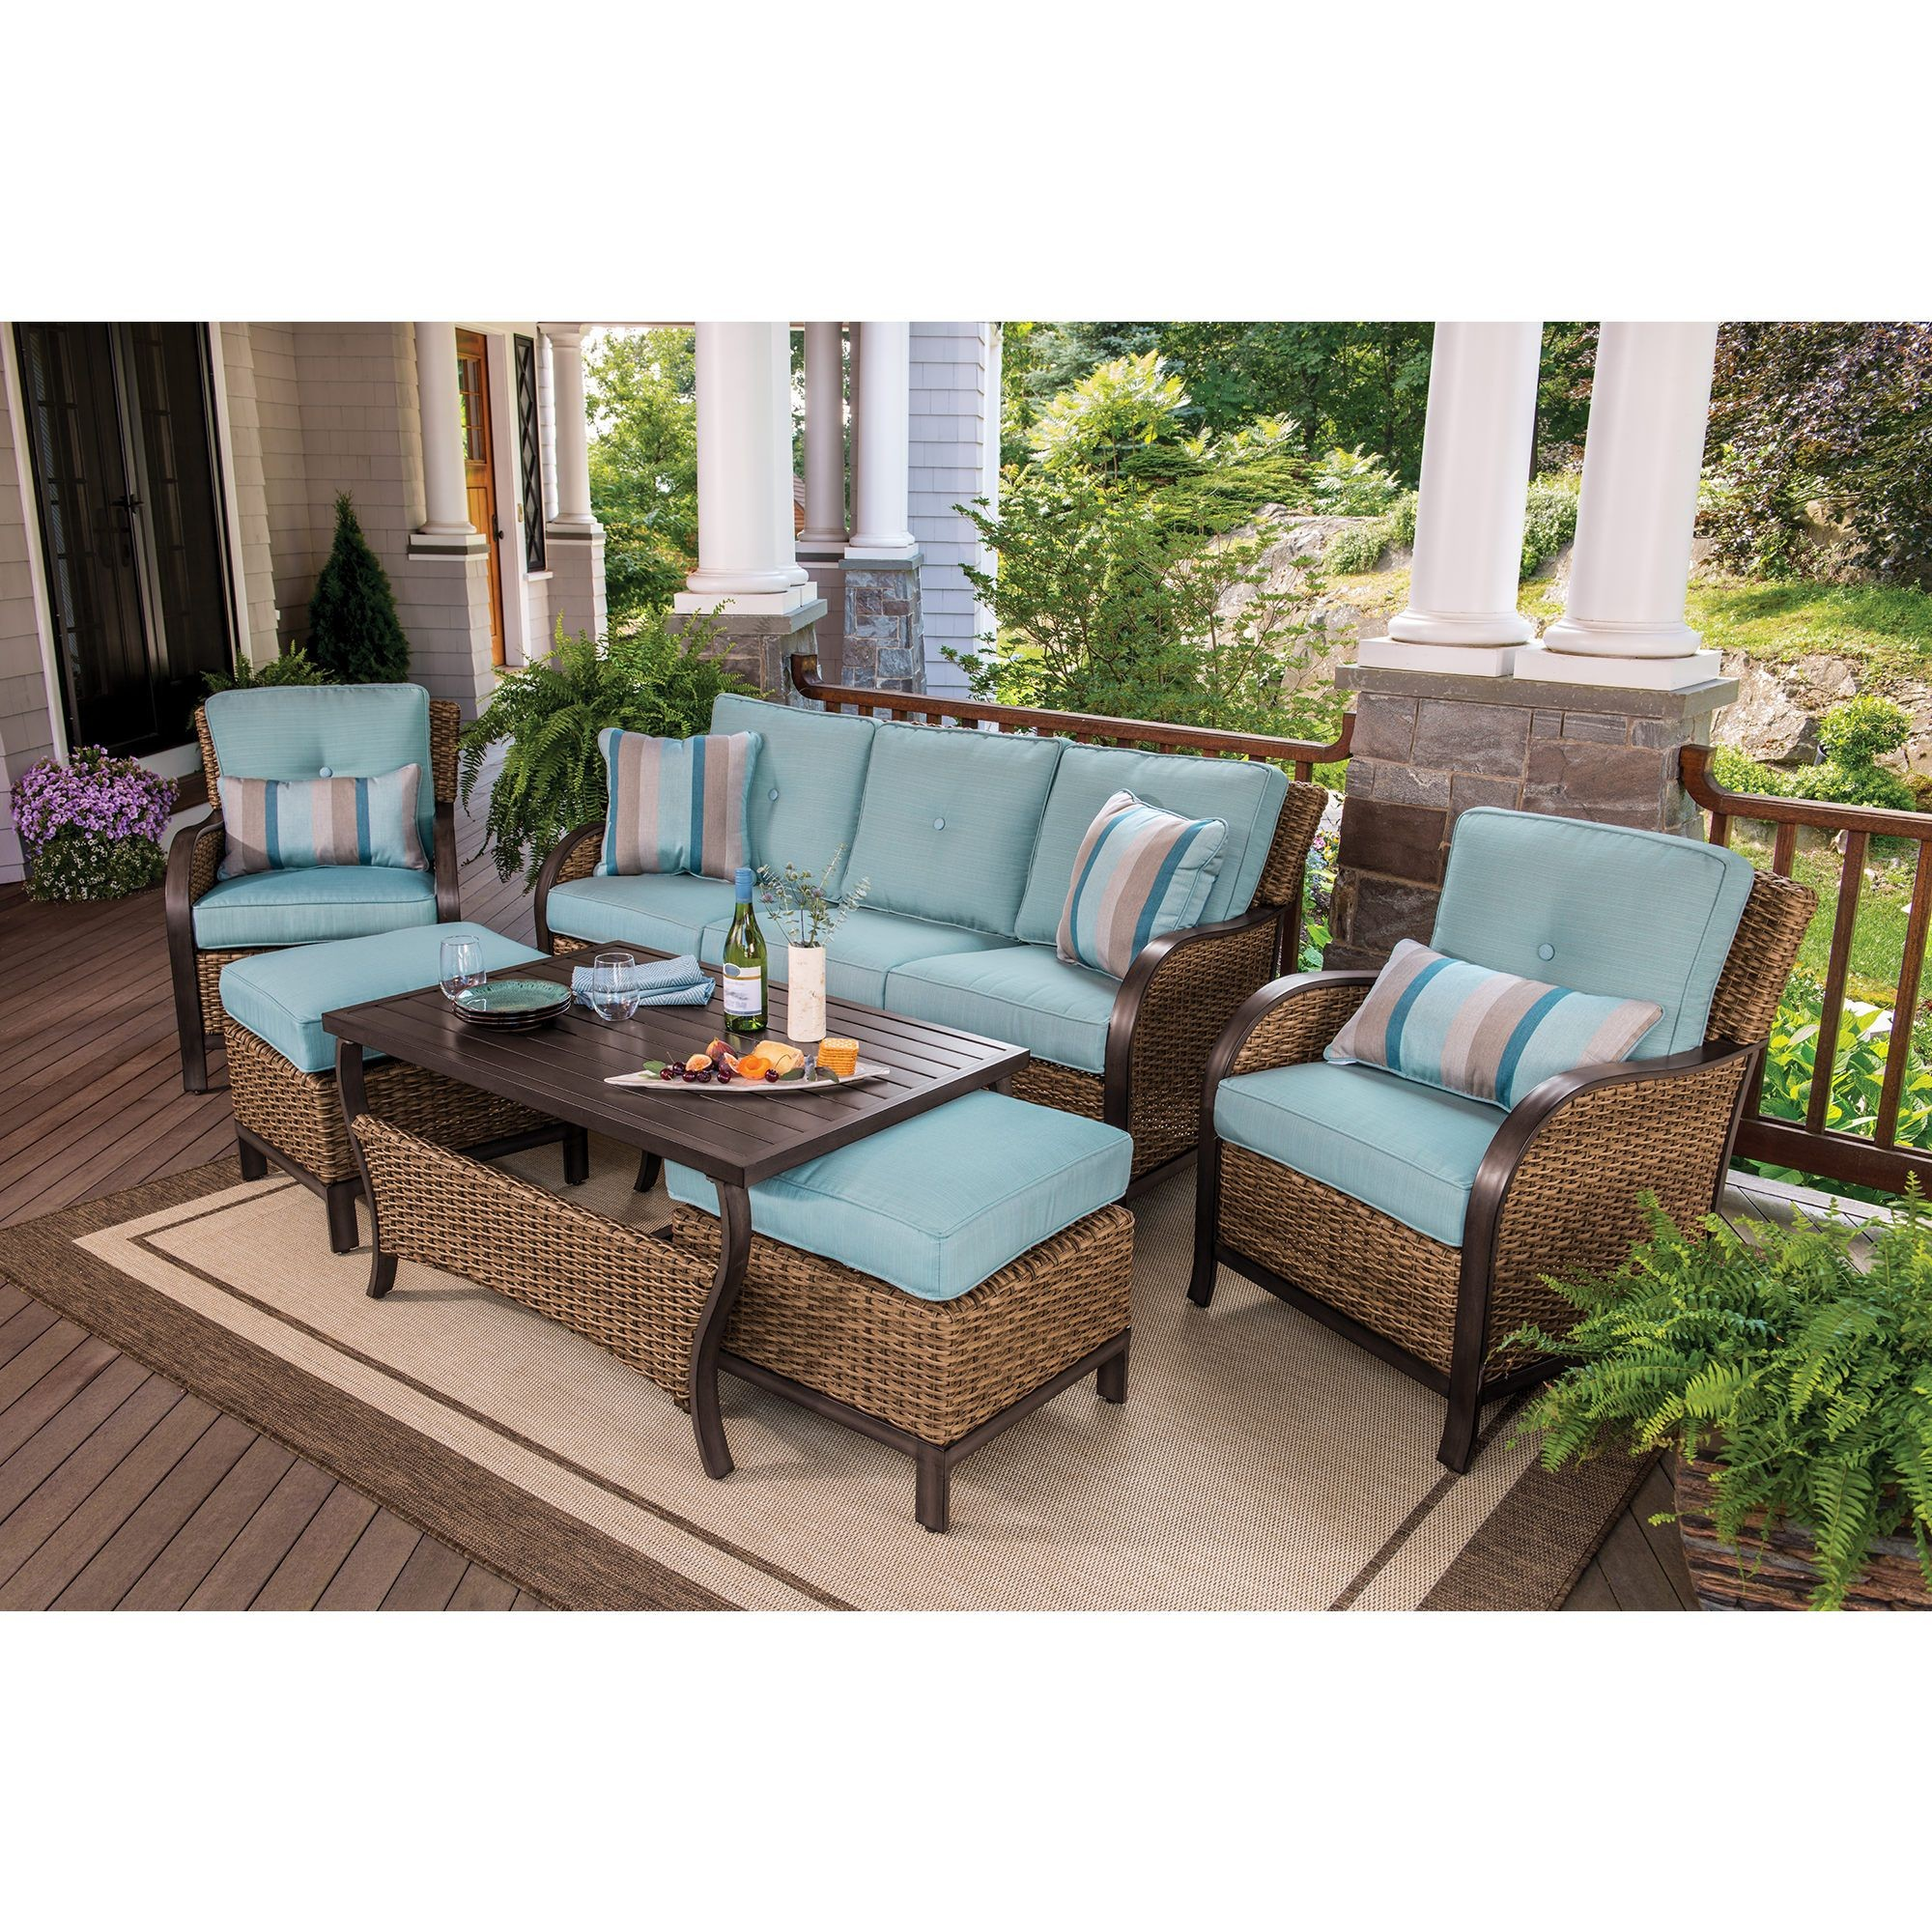 Berkley Jensen Outdoor Furniture